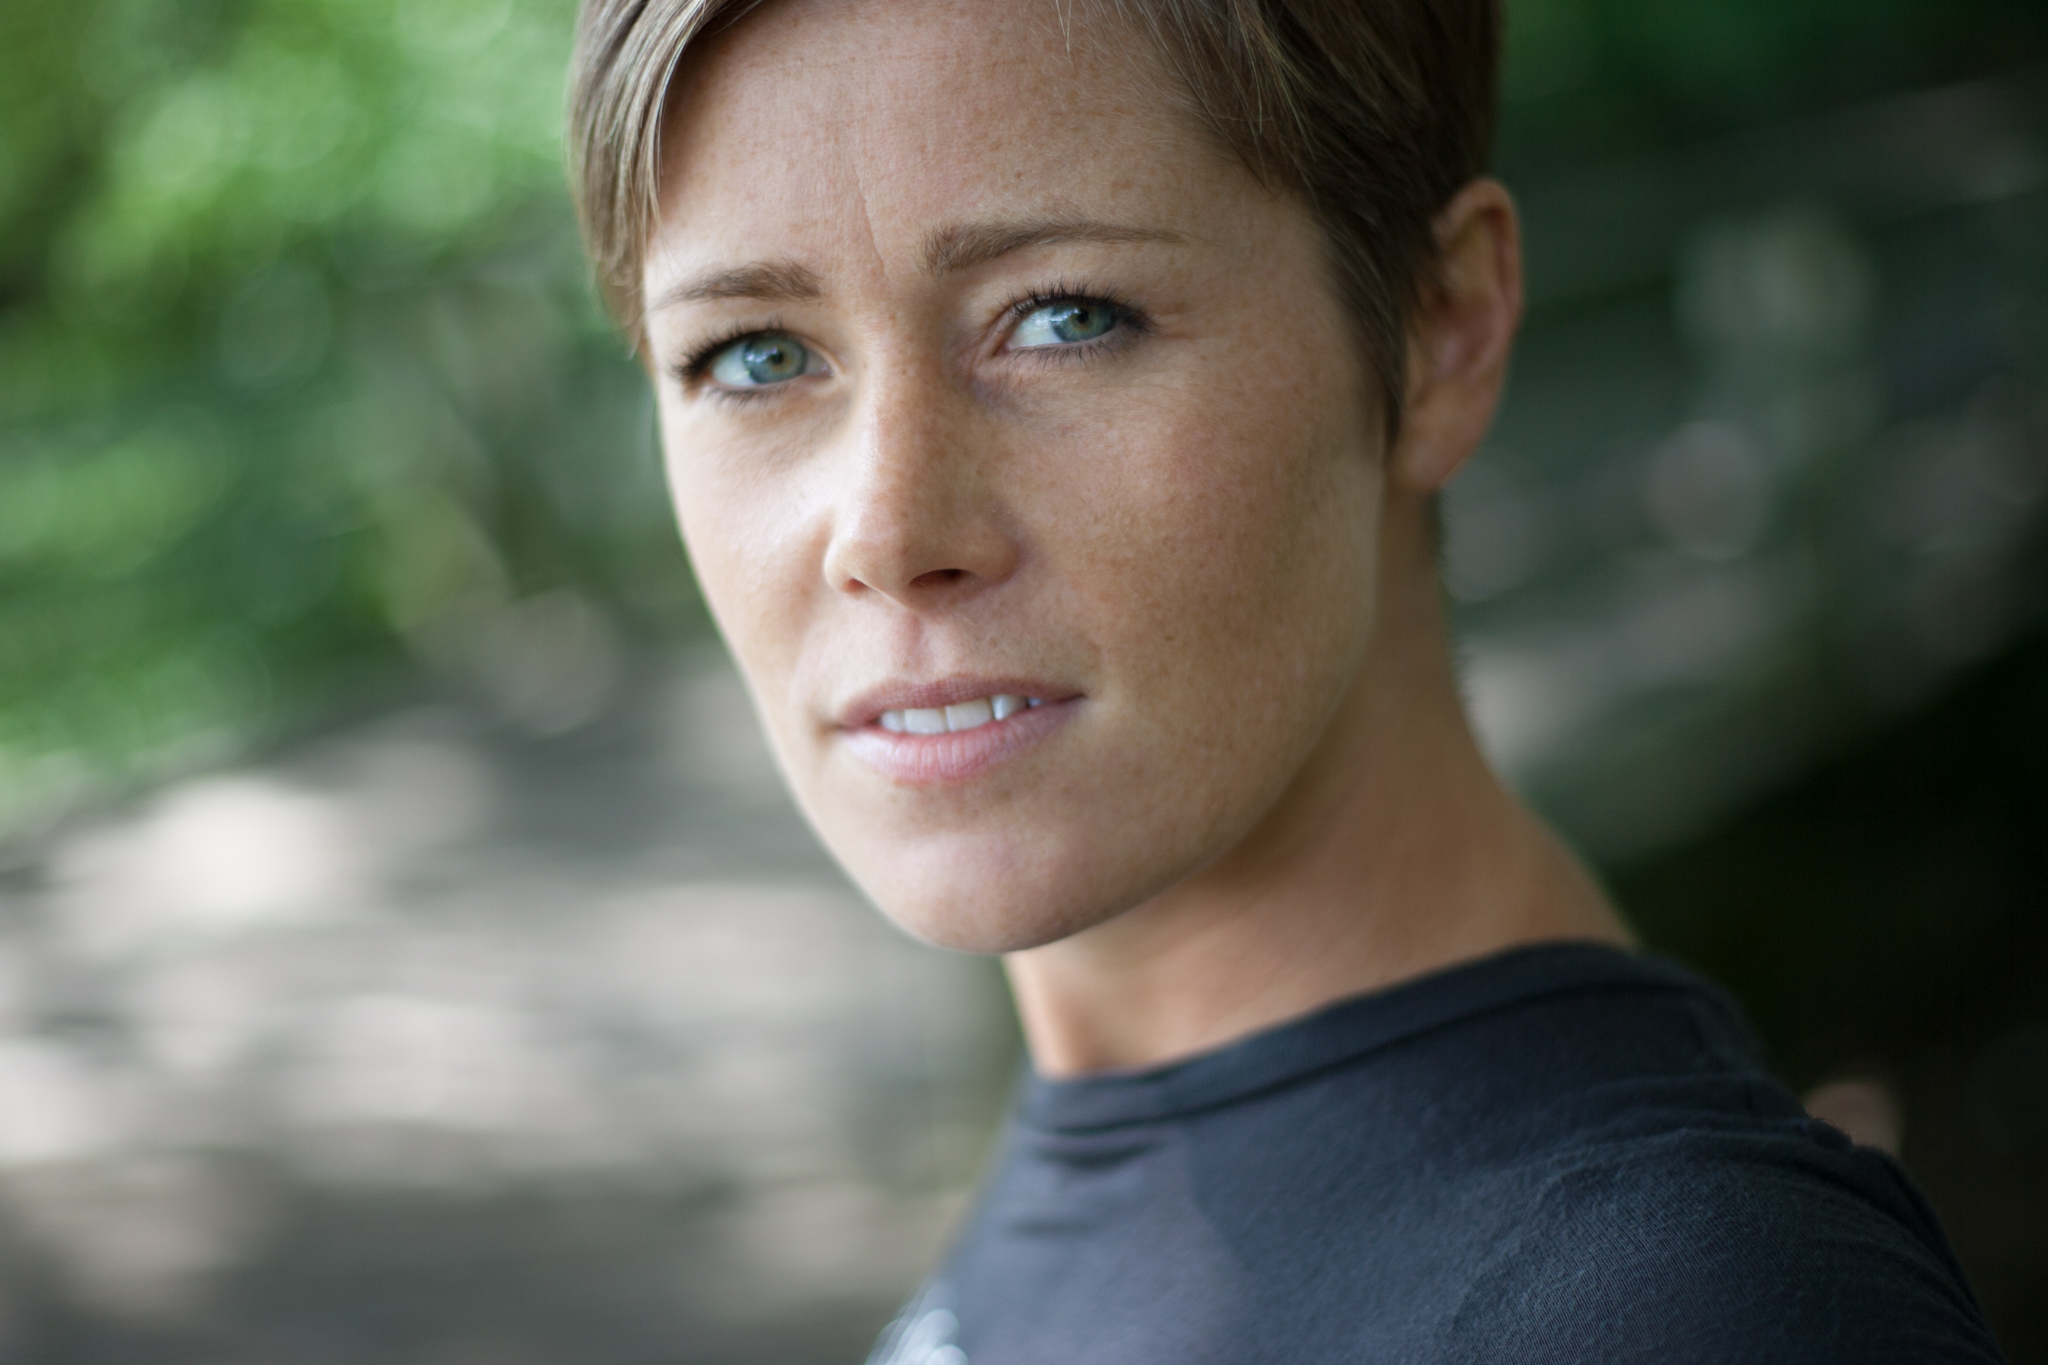 2018 Meditation Guide |Emily Squirrell - We are thrilled and honoured to have Emily Squirrell guide us through our outdoor mindfulness / meditation session.Emily has guided thousands of students from around the world in meditation and mindfulness. Her years of personal practice and study with teachers from various wisdom traditions shines through in her pluralistic style, allowing each of her students to discover the most effective method for their own practice. She brings a humanistic approach with a background in psychology and behavioural science. Her communication style imparts clarity and sparks curiosity given her former role as an advertising brand planner in Toronto. She continues to study with her own meditation teacher as well as complete ongoing training in mindfulness and MBSR (Mindfulness-based Stress Reduction). After leading full-time meditation programs at a retreat centre in Bali, Indonesia, Emily returned to Ontario and is now the owner and lead guide of The Present, a Centre for Meditation & Mindfulness in Waterloo.www.thepresent.ca